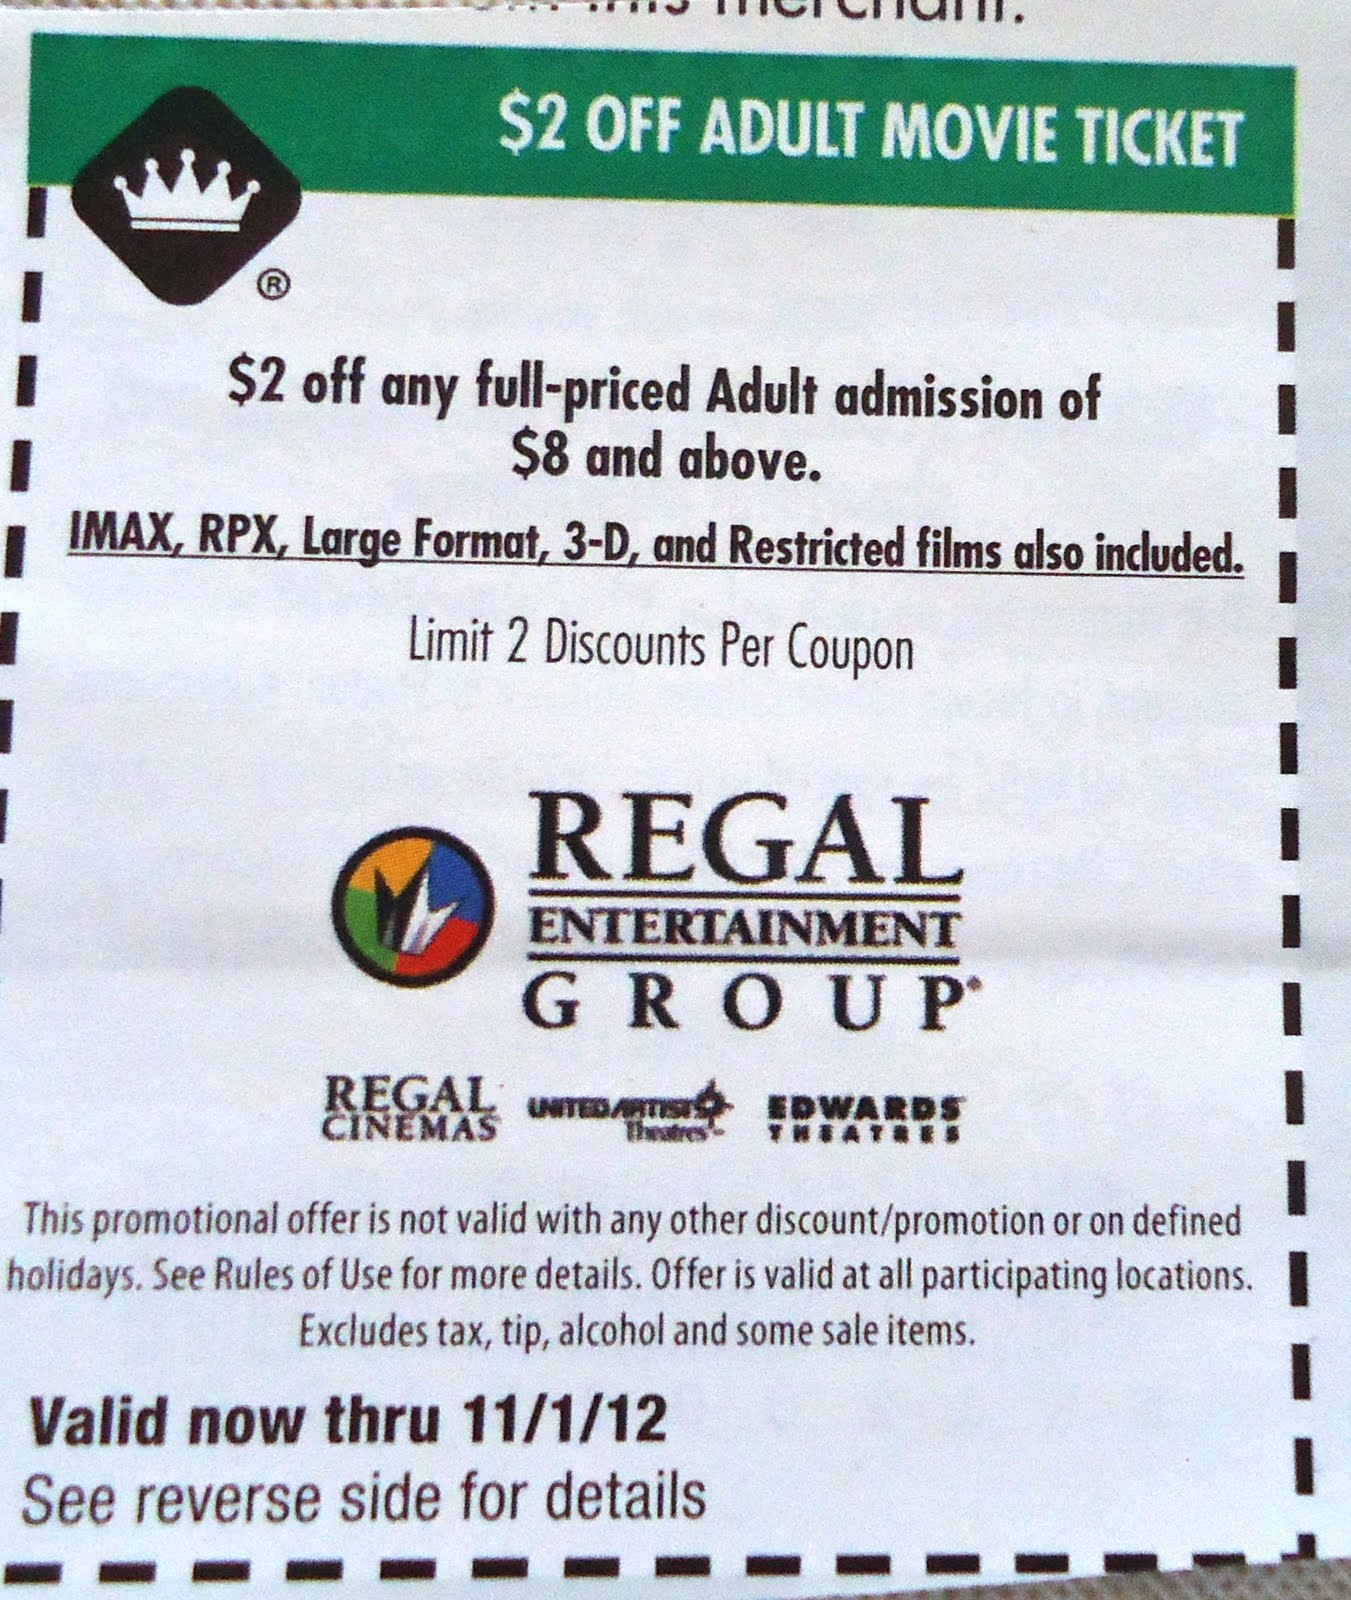 Regal Popcorn Coupon July 2018 : Harcourt Outlines Coupons - Regal Cinema Free Popcorn Printable Coupons